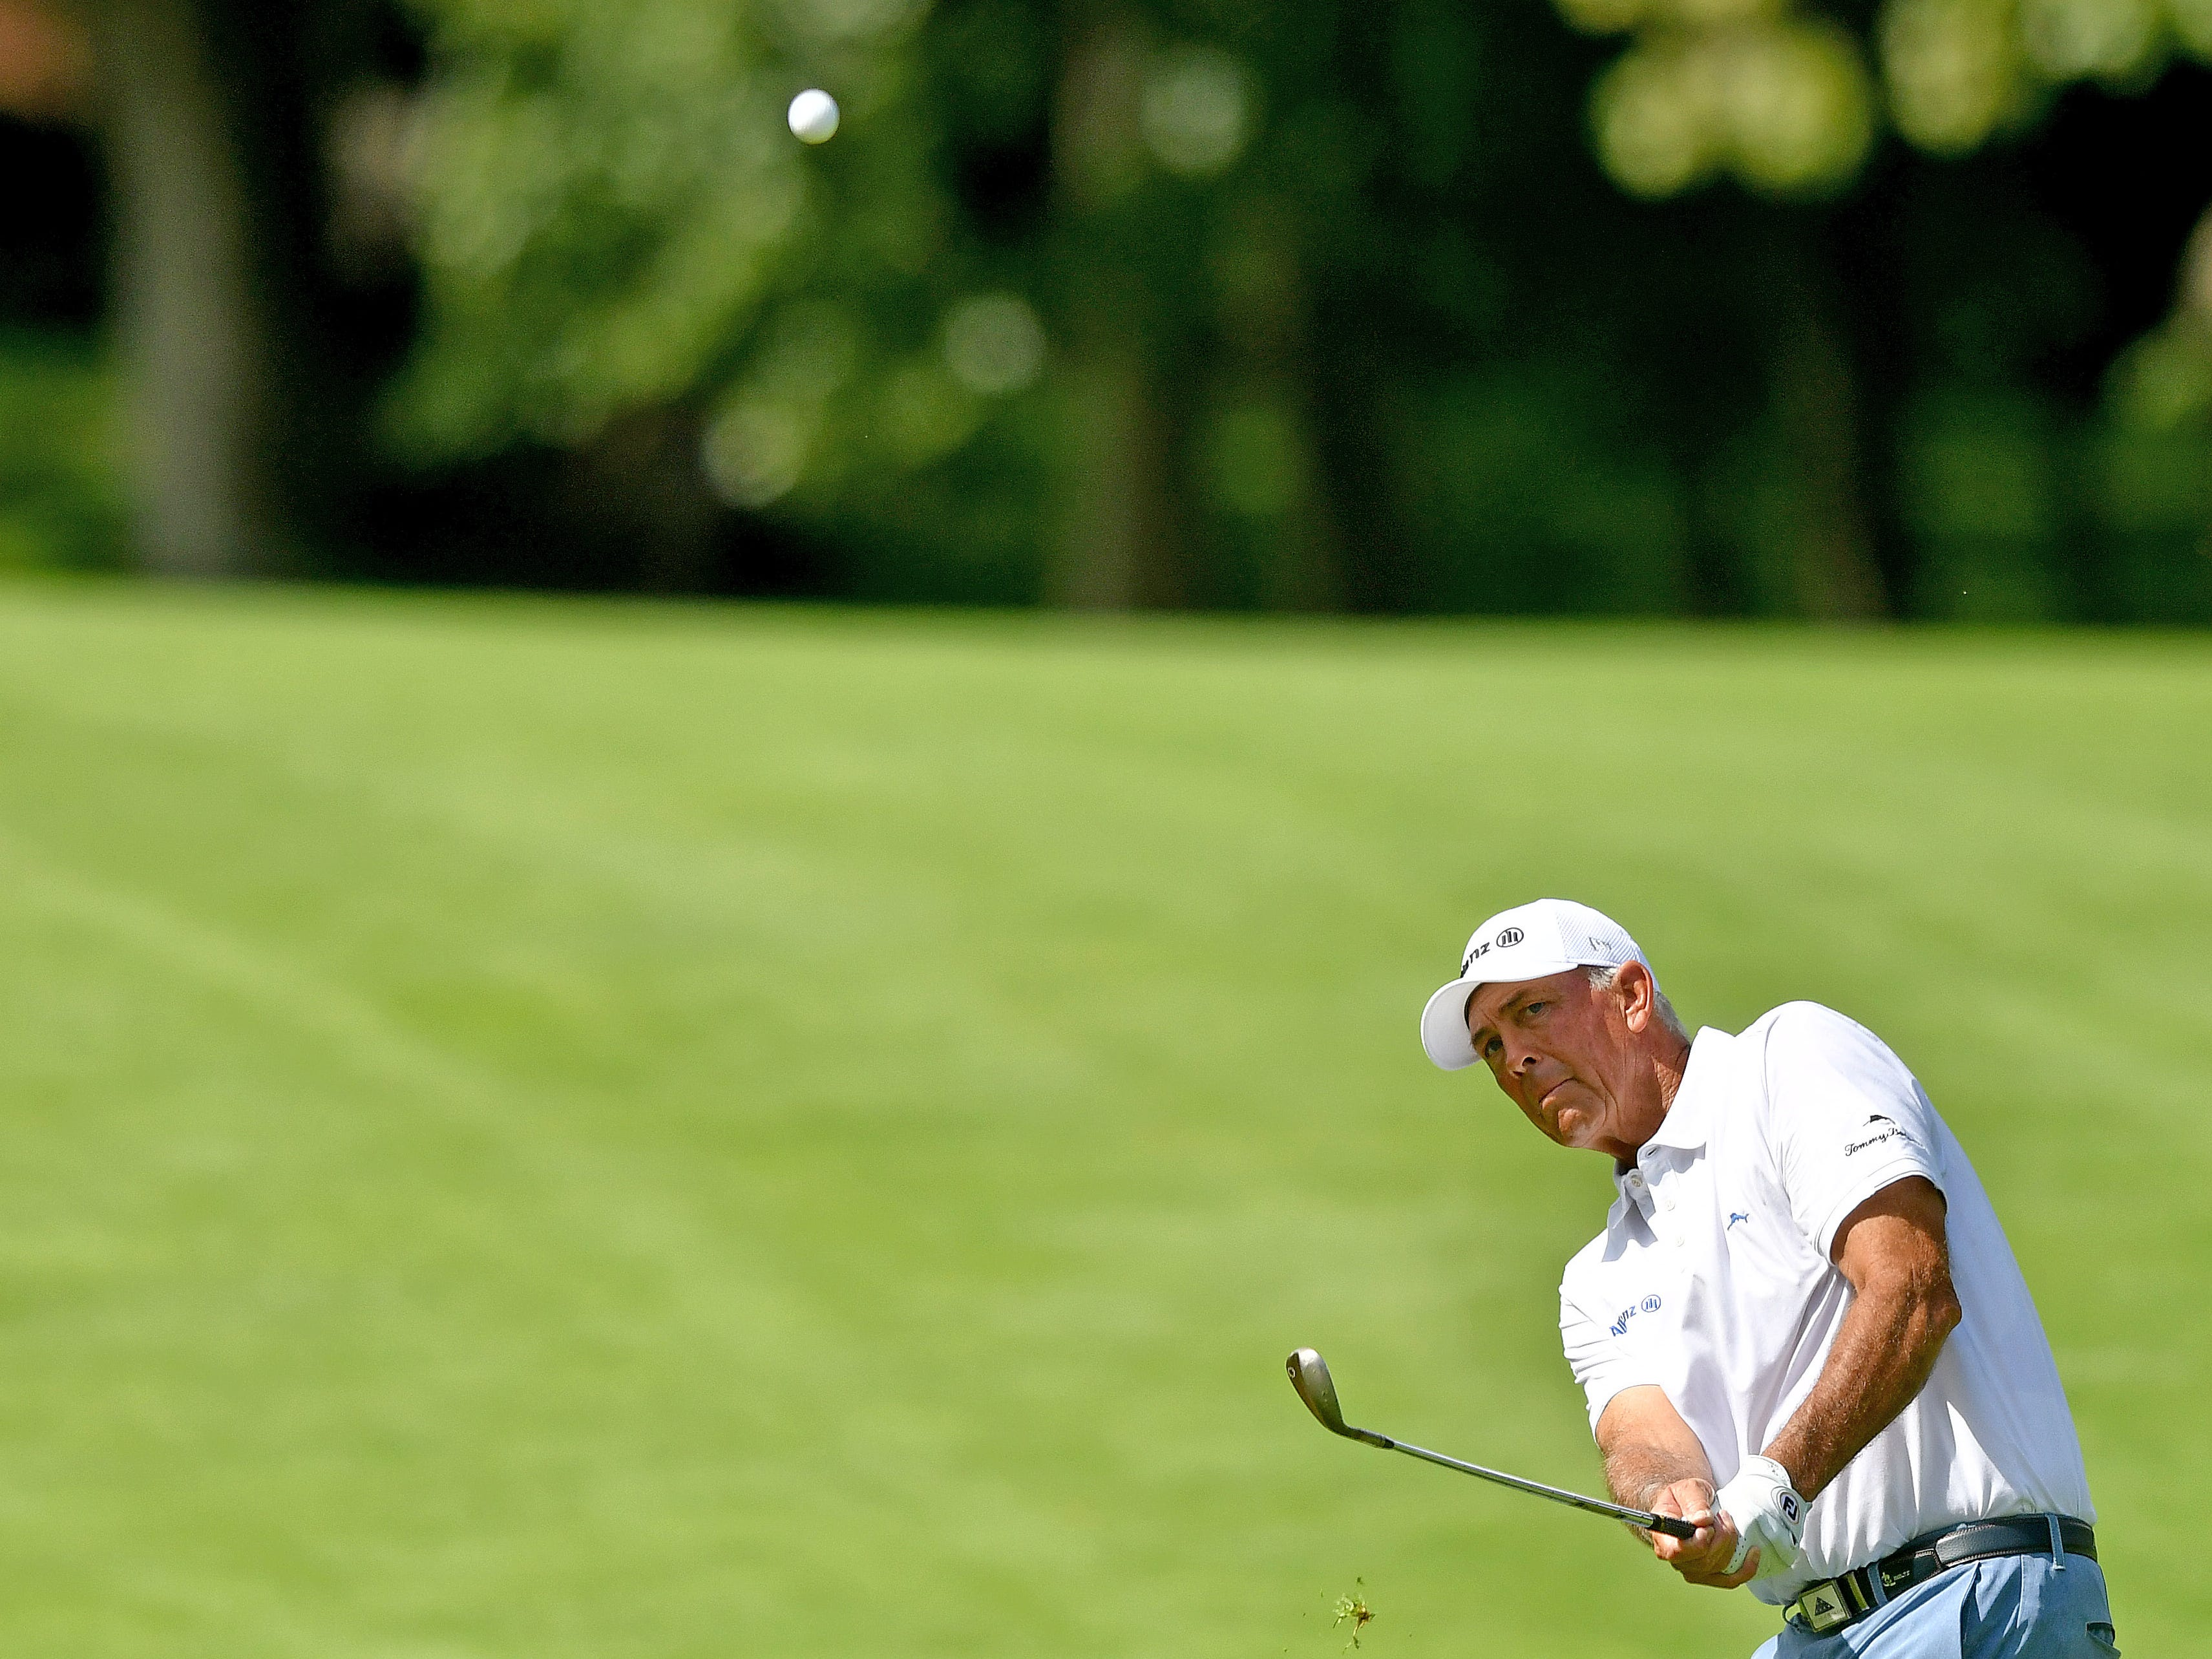 Tom Lehman watches his approach shot on the first hole.